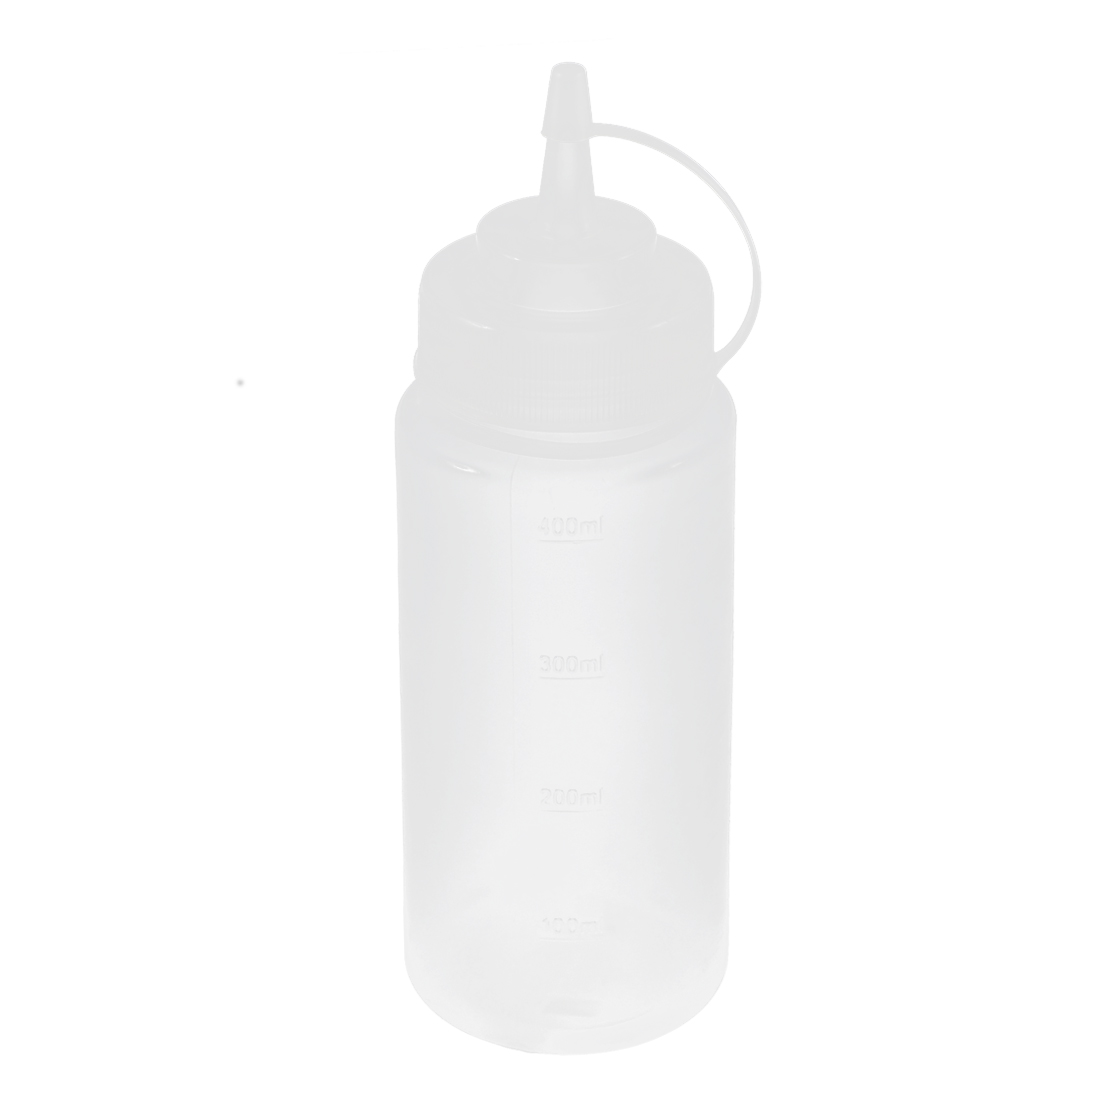 Plastic Squeeze Bottle Ketchup Mustard Condiment Dispenser 16oz Clear